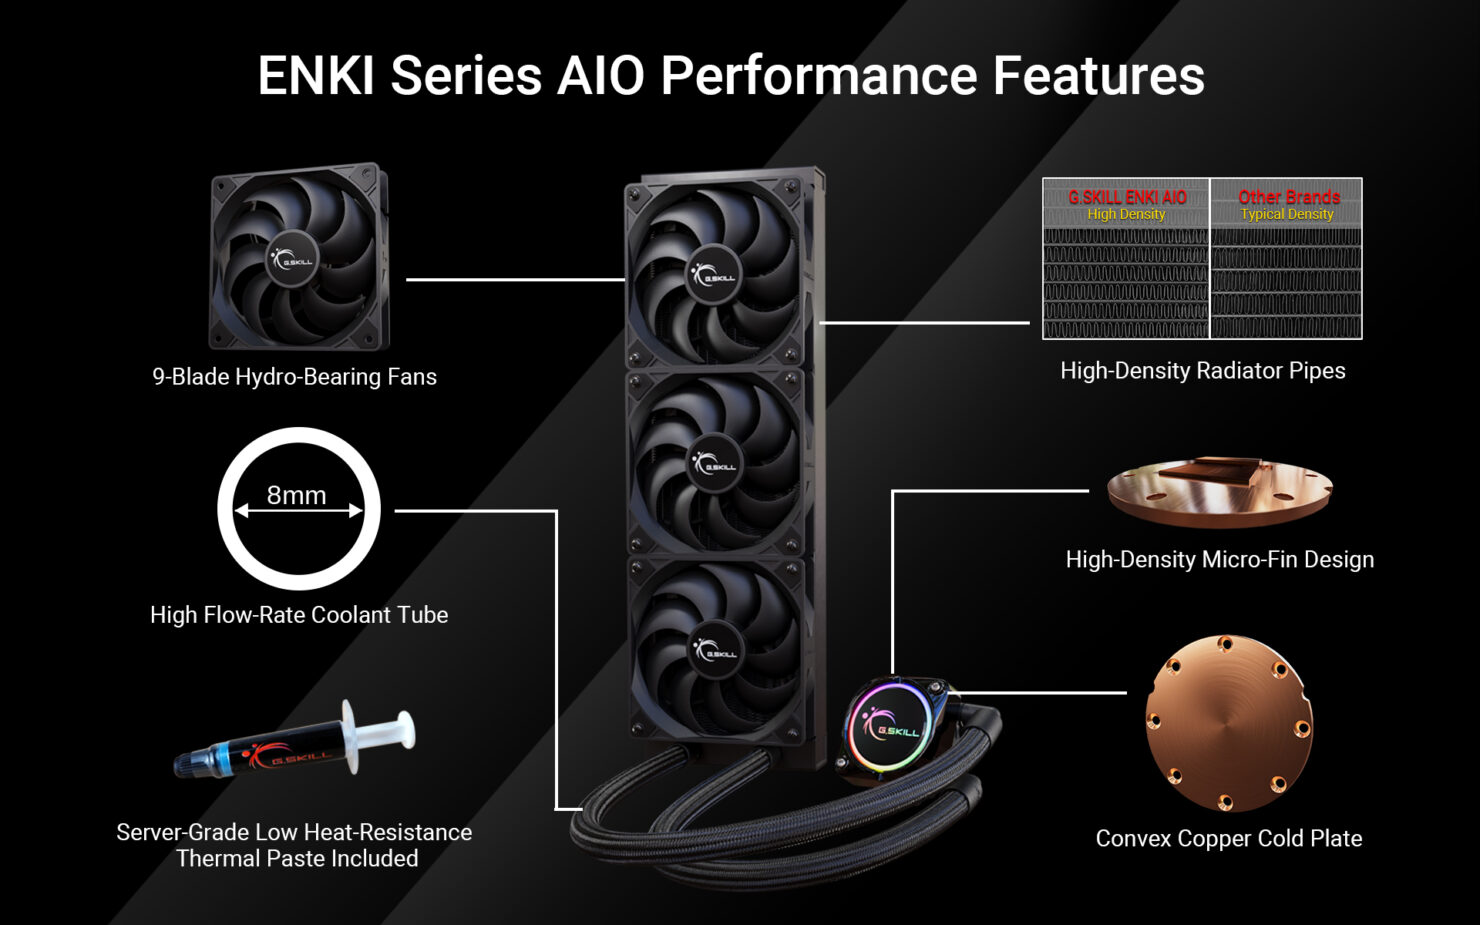 G.Skill Enters The Liquid Cooling Market, Unveils ENKI AIO Liquid Coolers in 360, 280 & 240mm Flavors_3